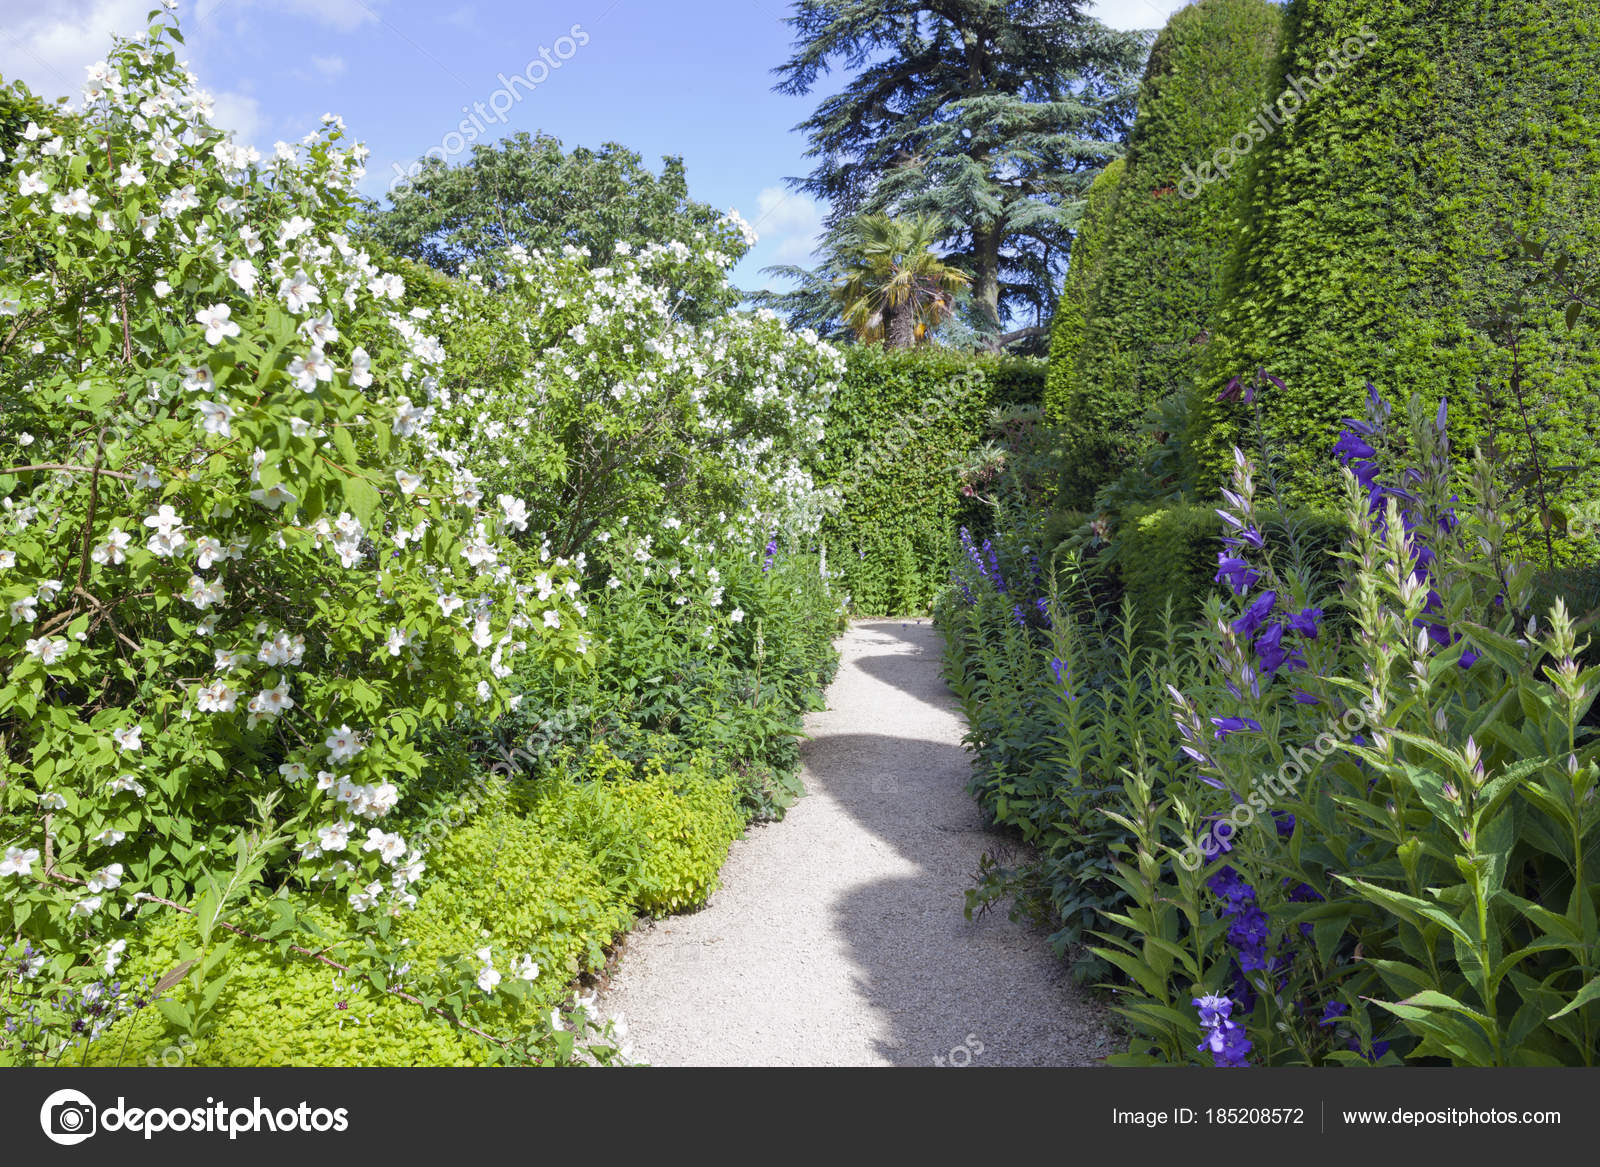 Garden path yew topiary trees white flowering shrubs purple flowers garden path between yew topiary trees and white flowering shrubs purple flowers on a sunny summer day photo by yolfran mightylinksfo